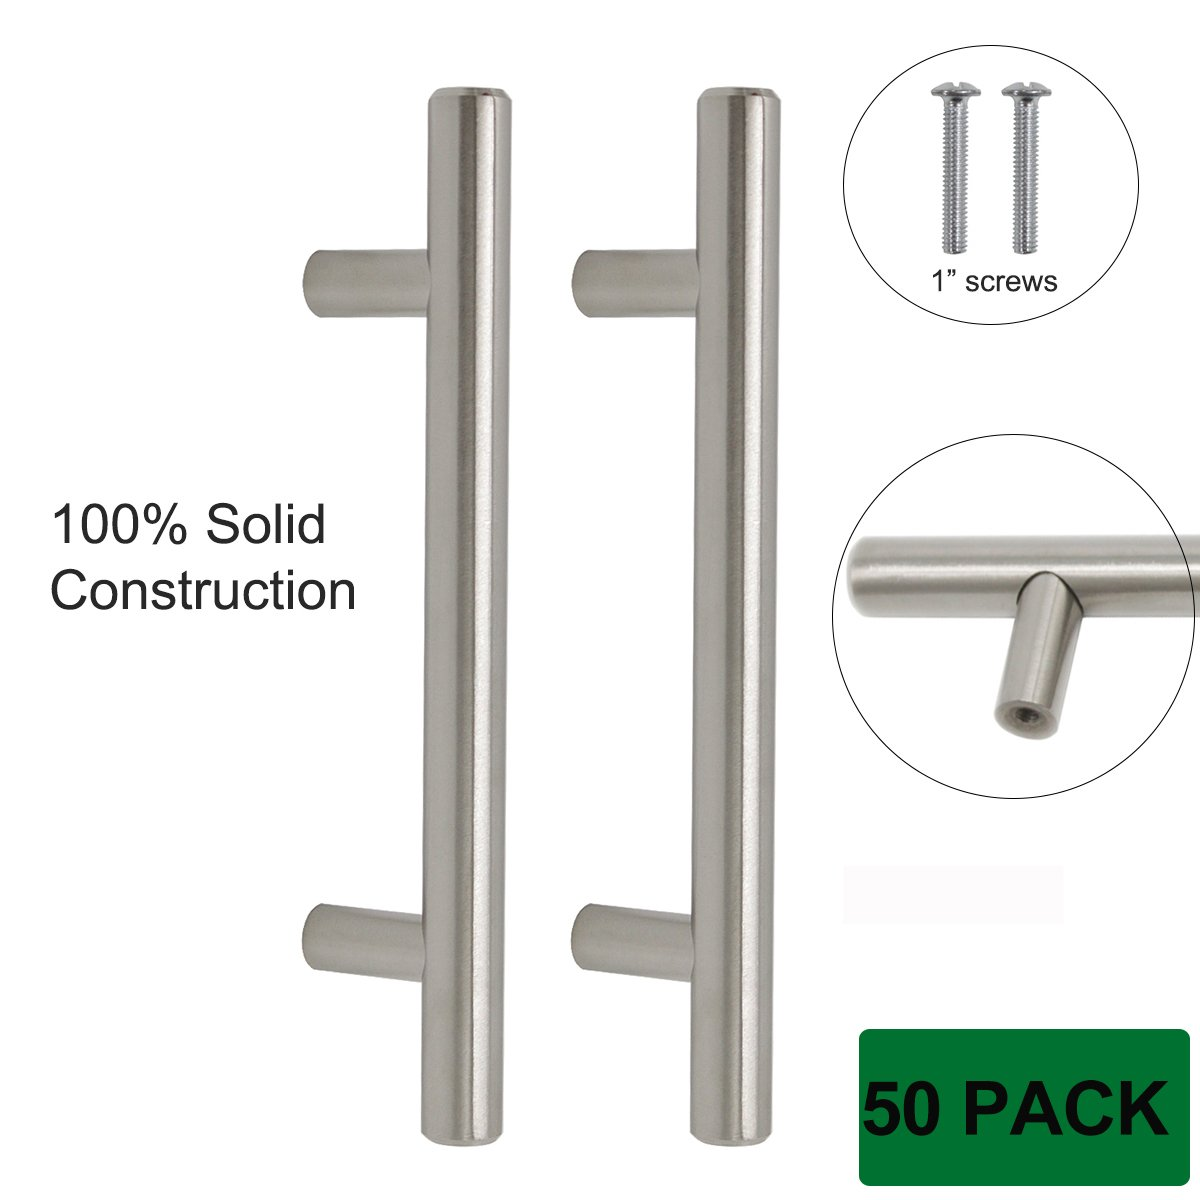 Probrico Kitchen Cabinet Knobs And Pulls Brushed Nickel T Bar Handles SOLID Stainless Steel 50 Pack, 3-3/4 Inch Screws Spacing